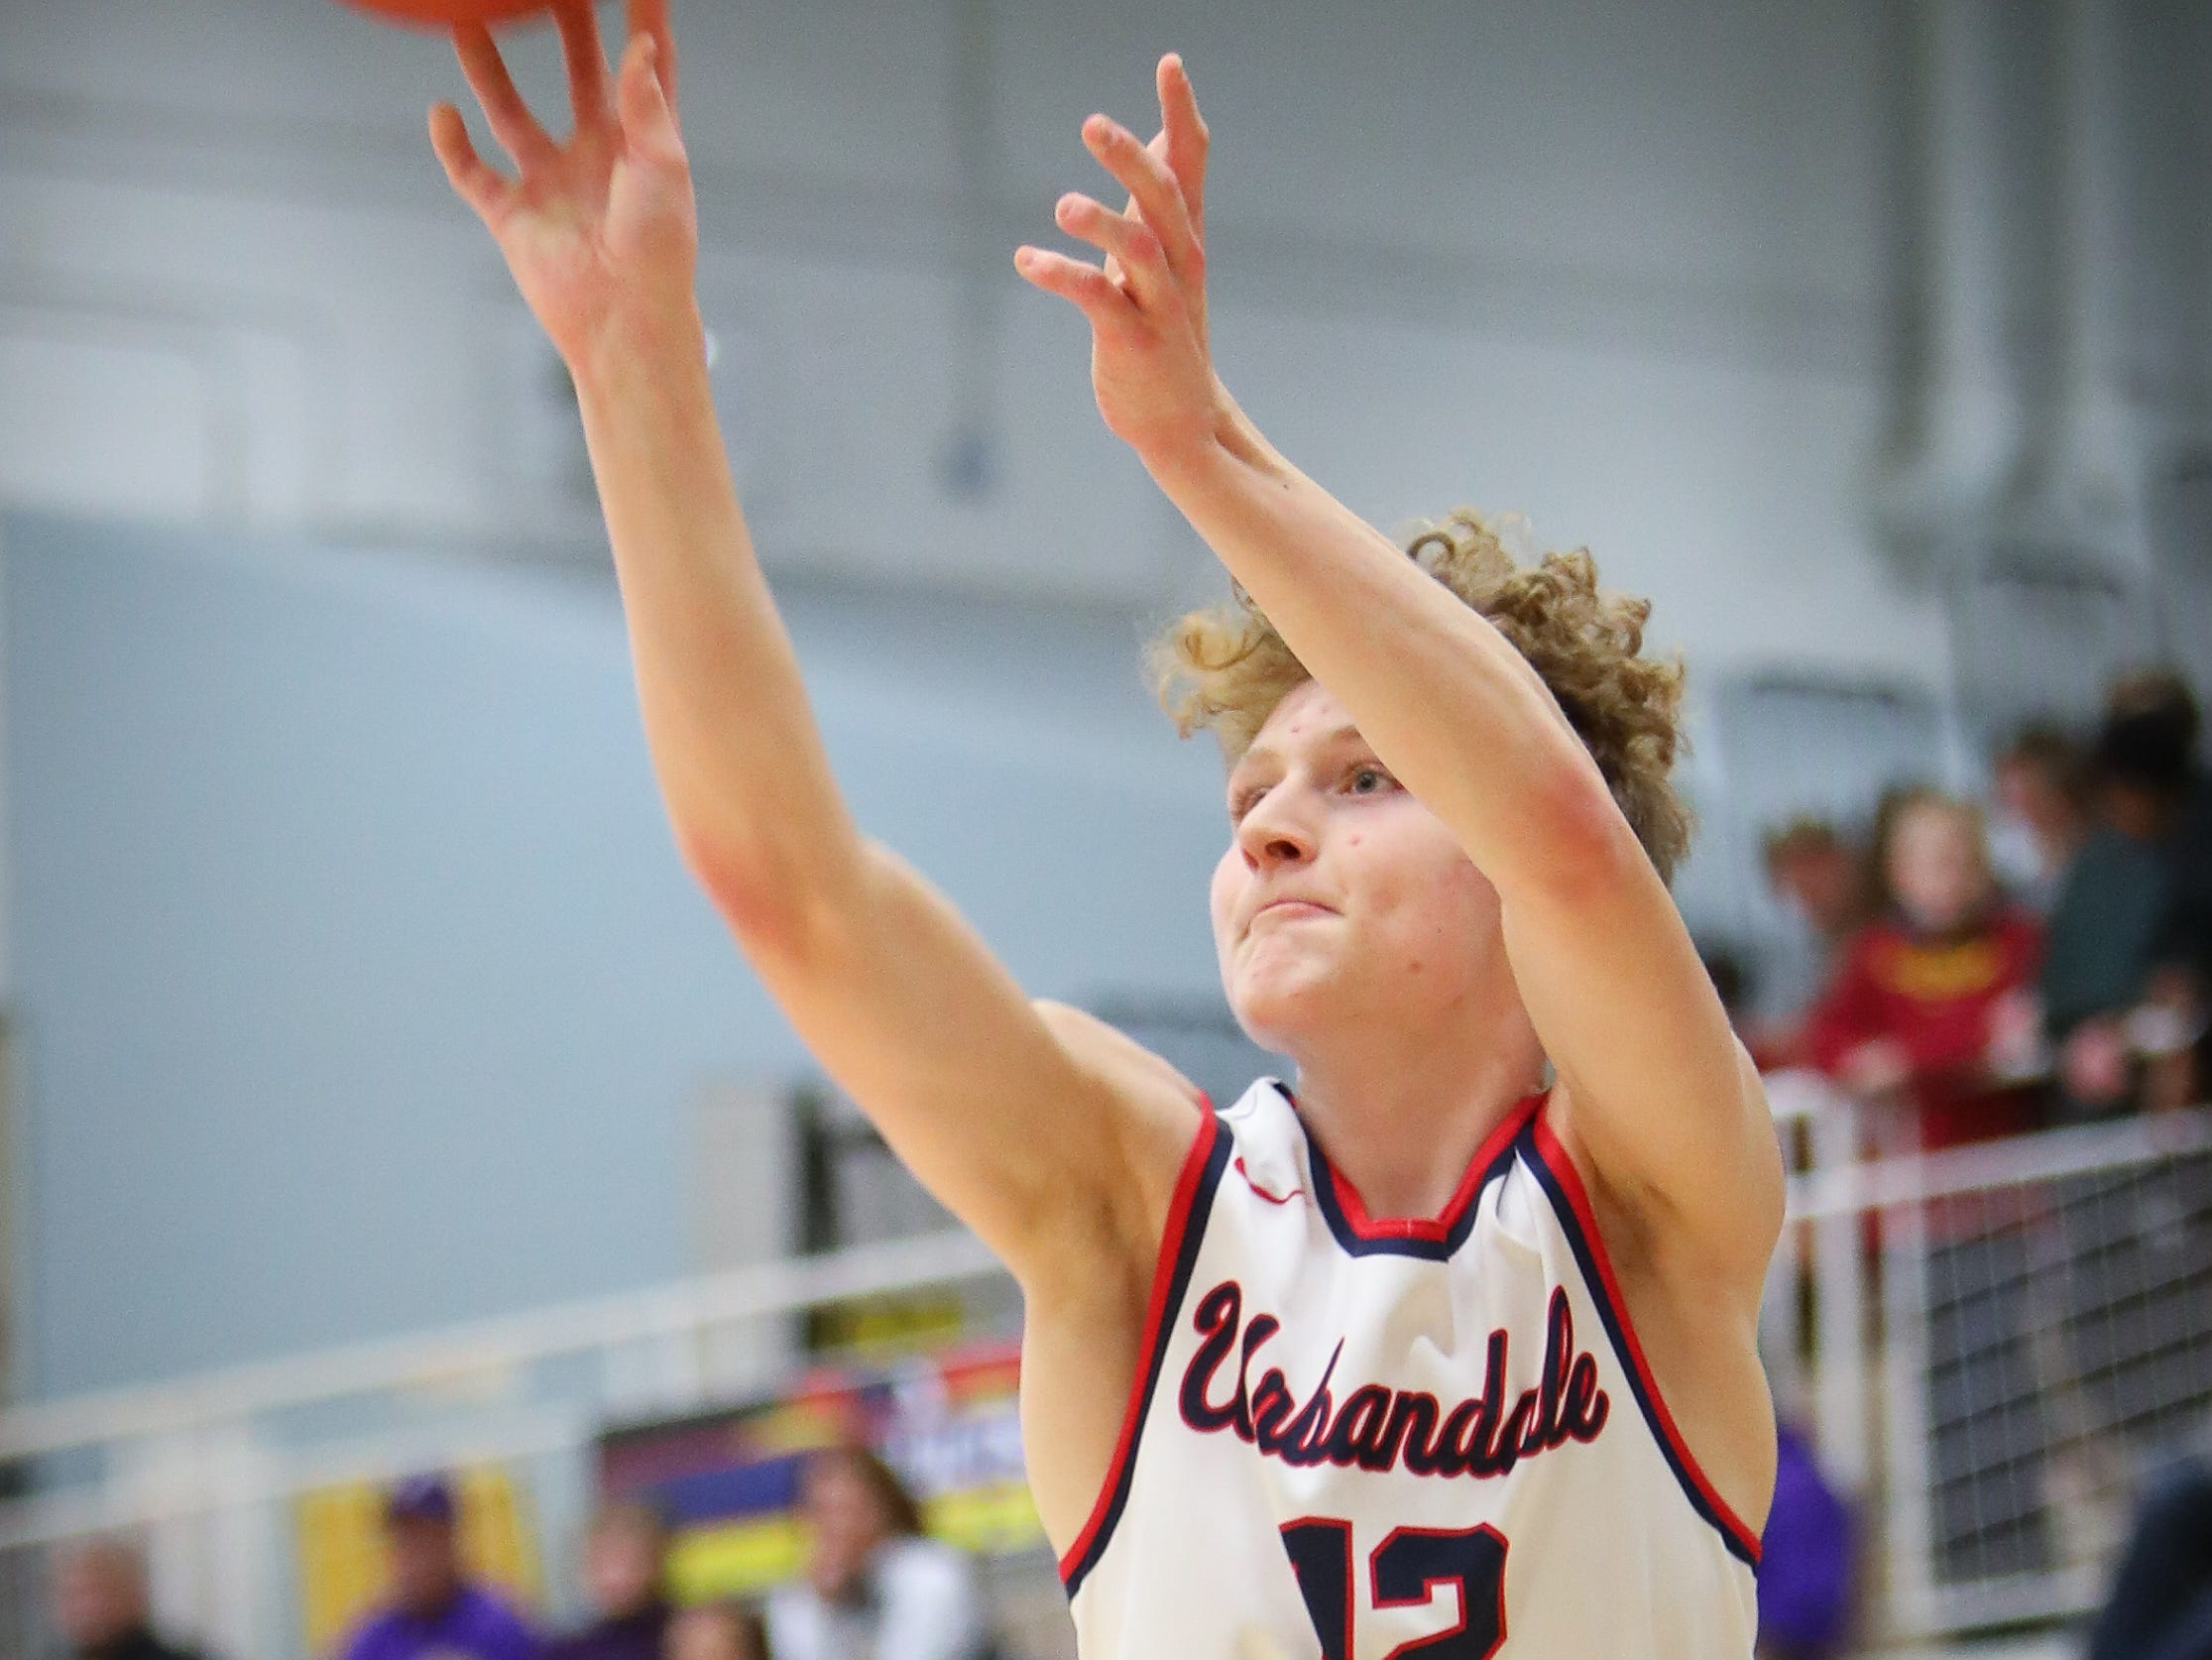 Urbandale junior Seth Anderson attempts a three-pointer during a boys high school basketball game between the Johnston Dragons and the Urbandale J-Hawks at Urbandale High School on Dec. 18, 2018 in Urbandale, Iowa.